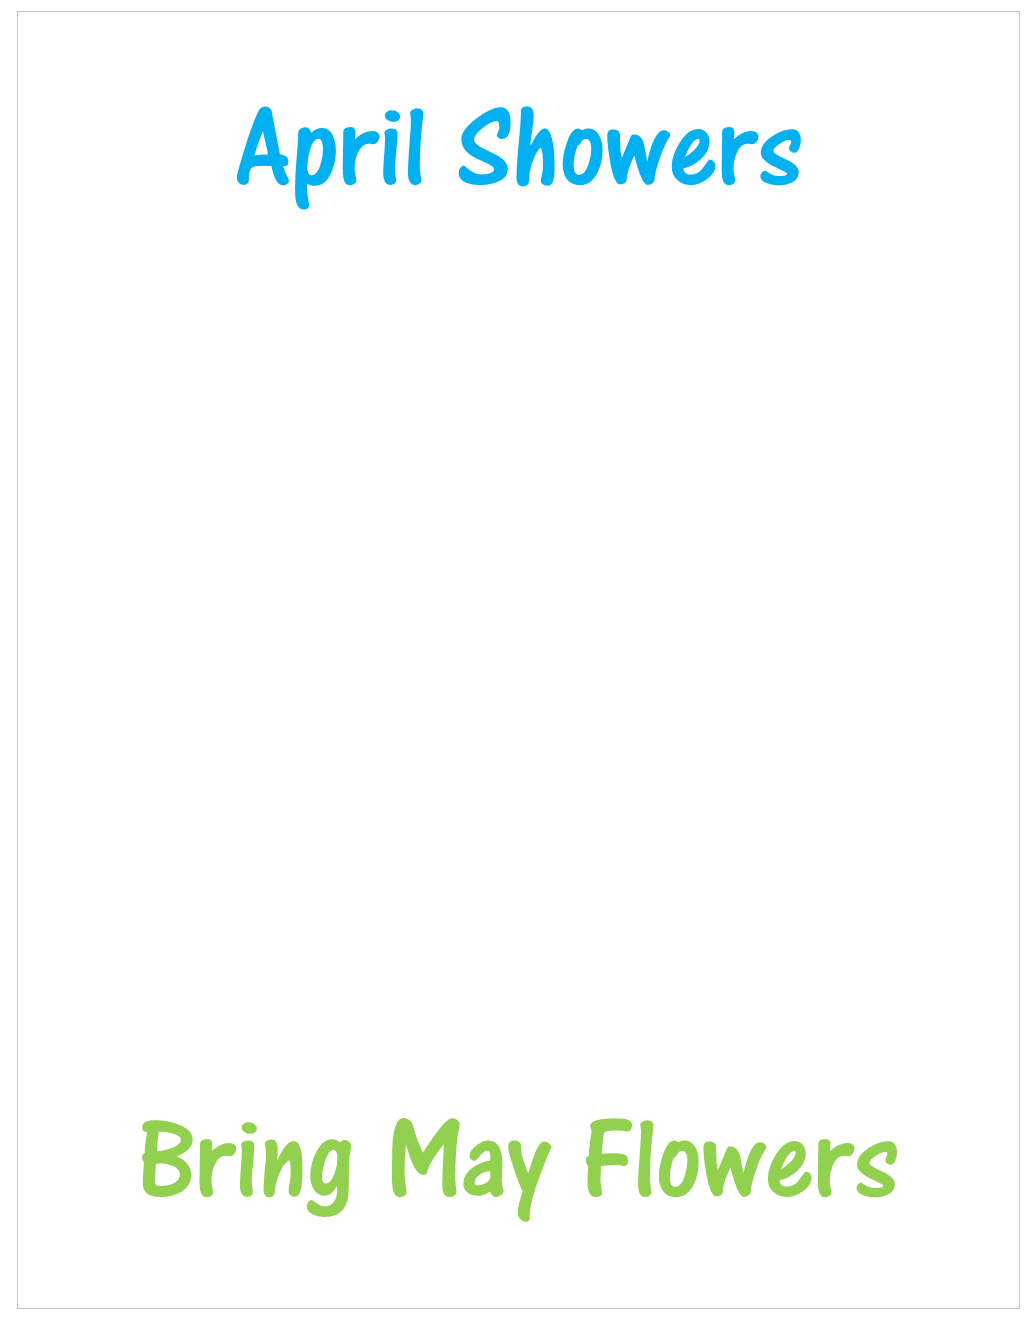 used this april showers bring may flowers printable and made flowers